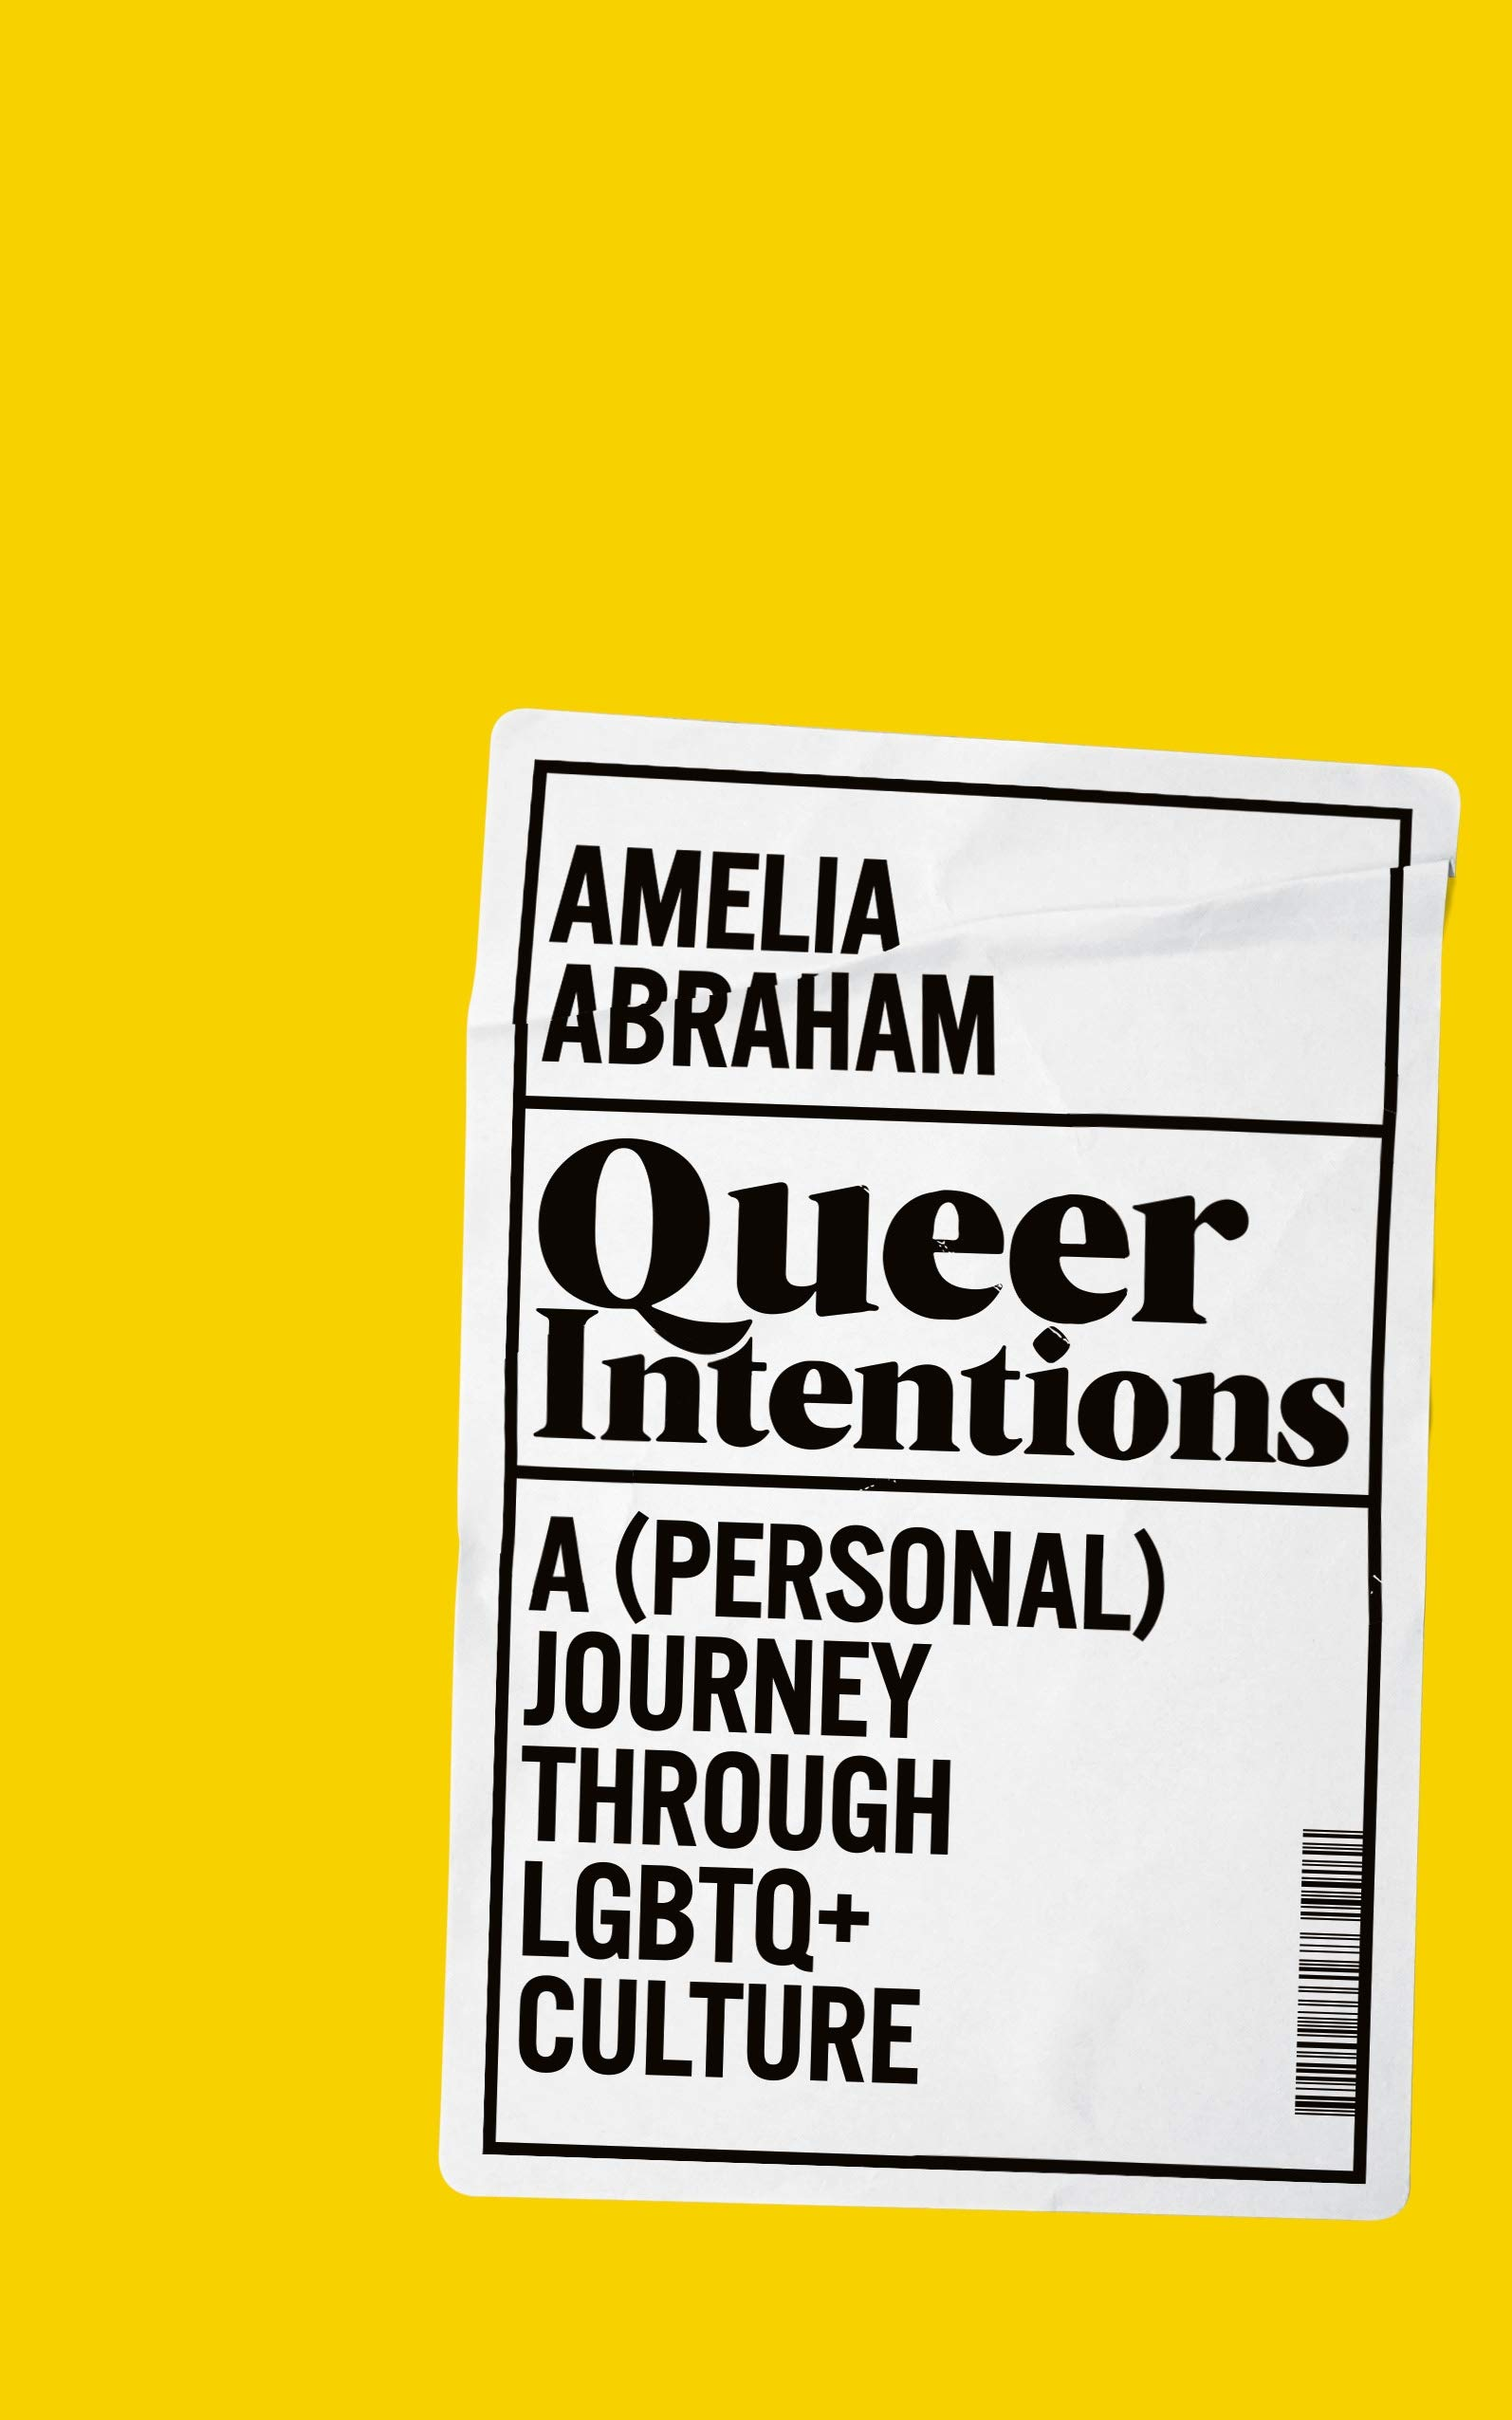 Featured Book - Queer Intentions: A (Personal) Journey Through LGBTQ+ Culture by Amelia Abraham (Pan Macmillan, 2019)